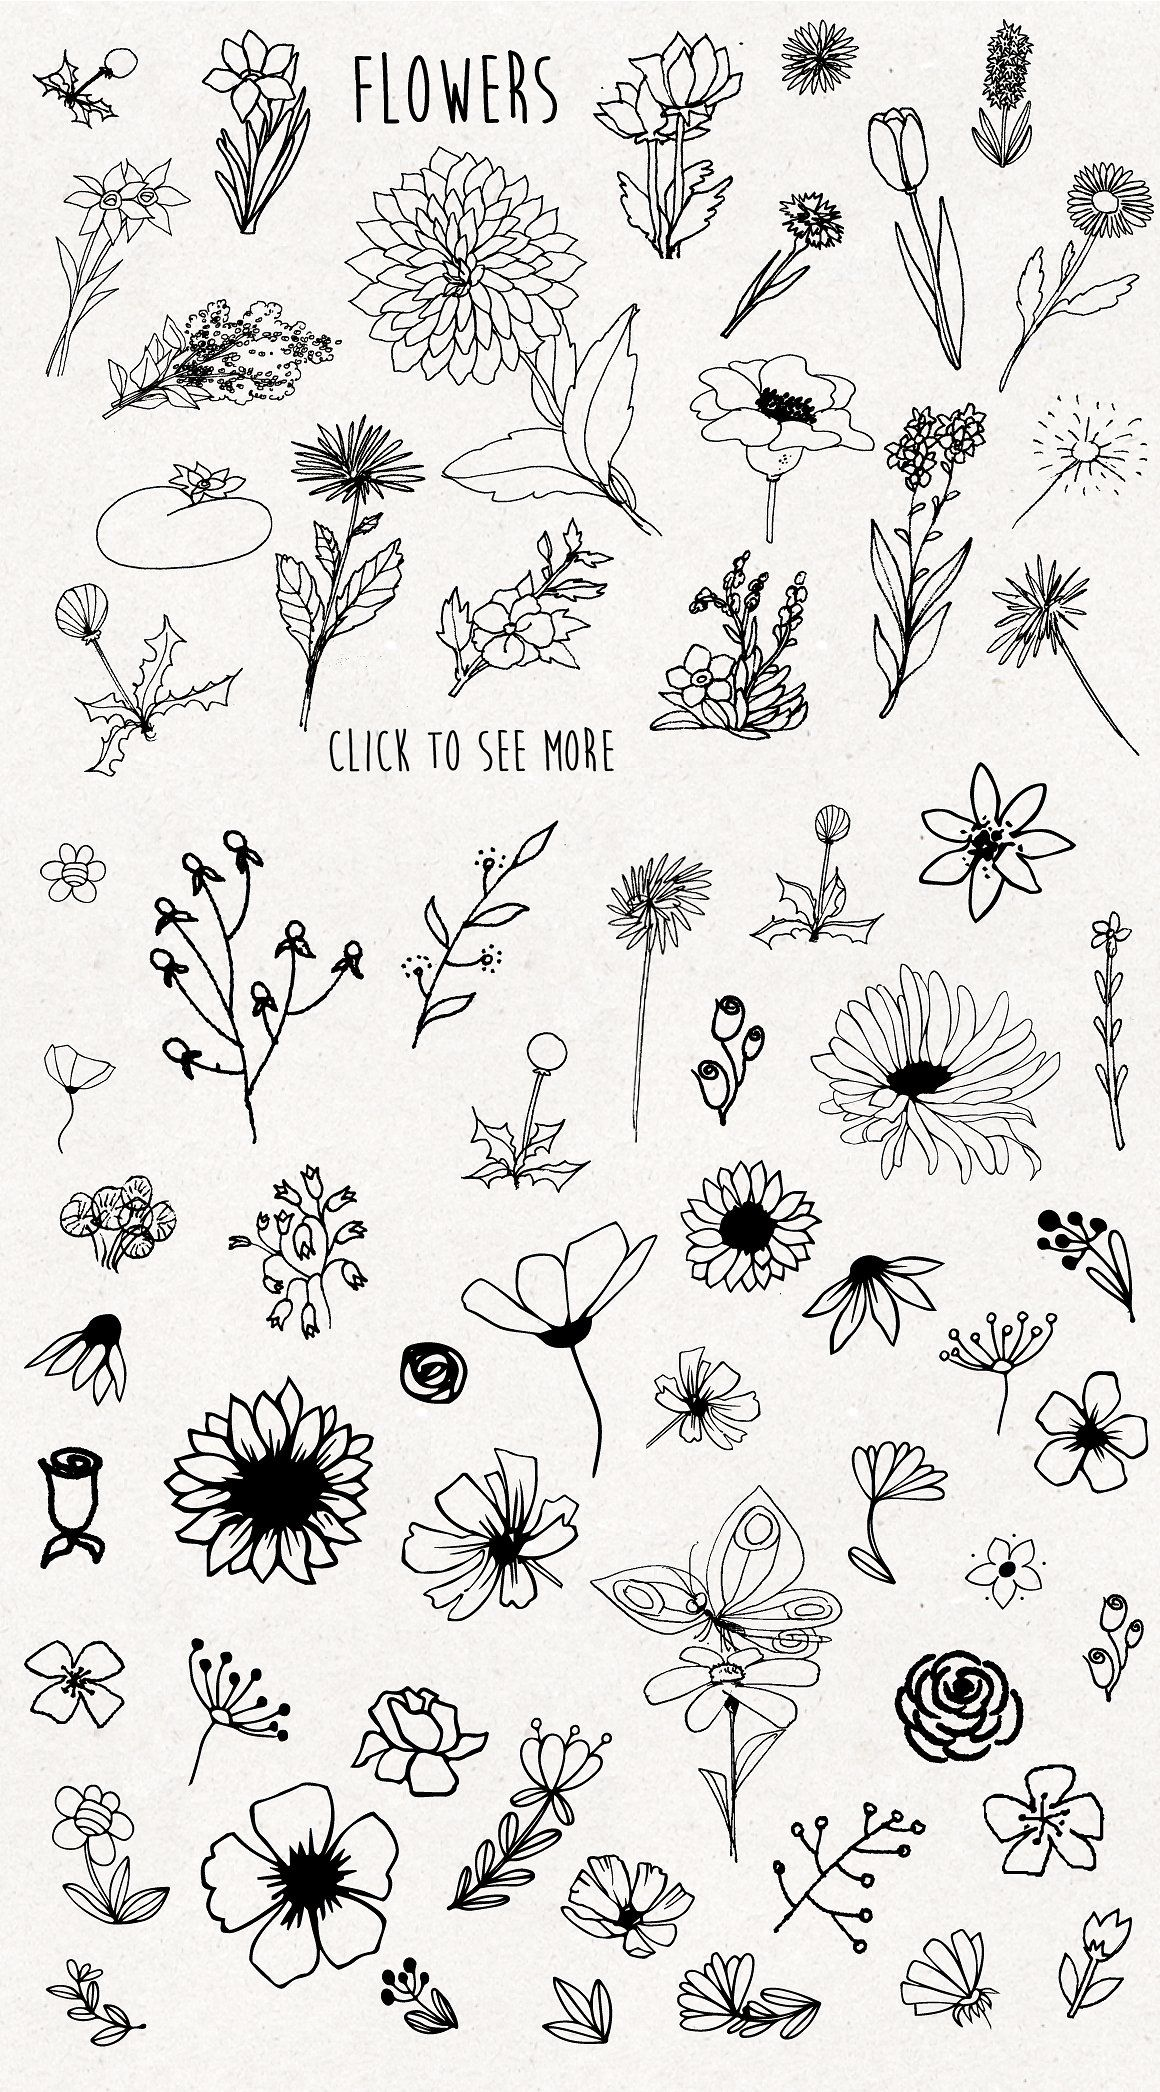 Only Flowers Flower Sketches Bullet Journal Art Floral Drawing